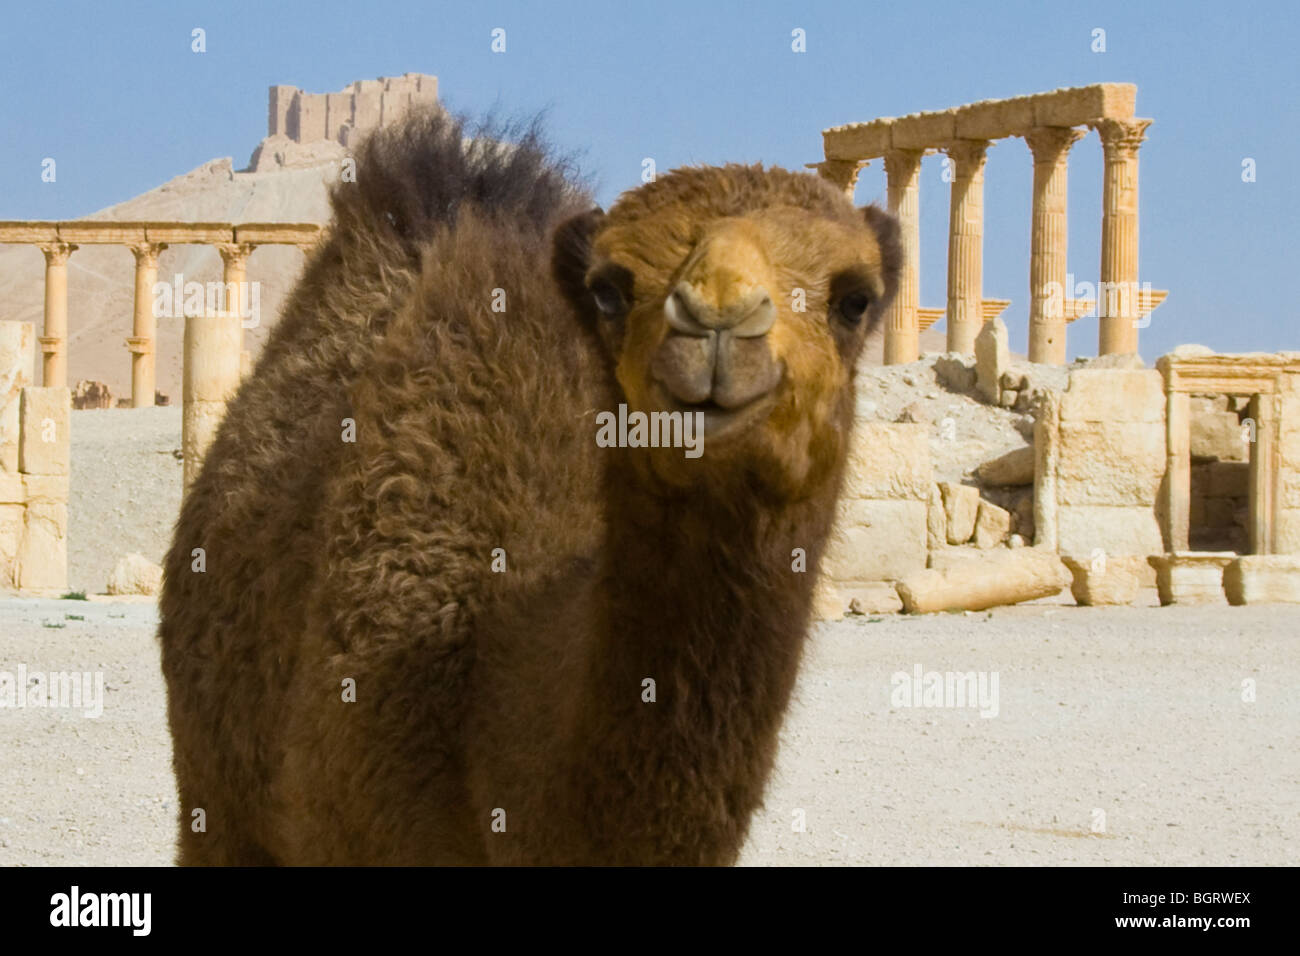 Baby Camel in front of the Tetrapylon at the Roman Ruins of Palmyra in Syria - Stock Image